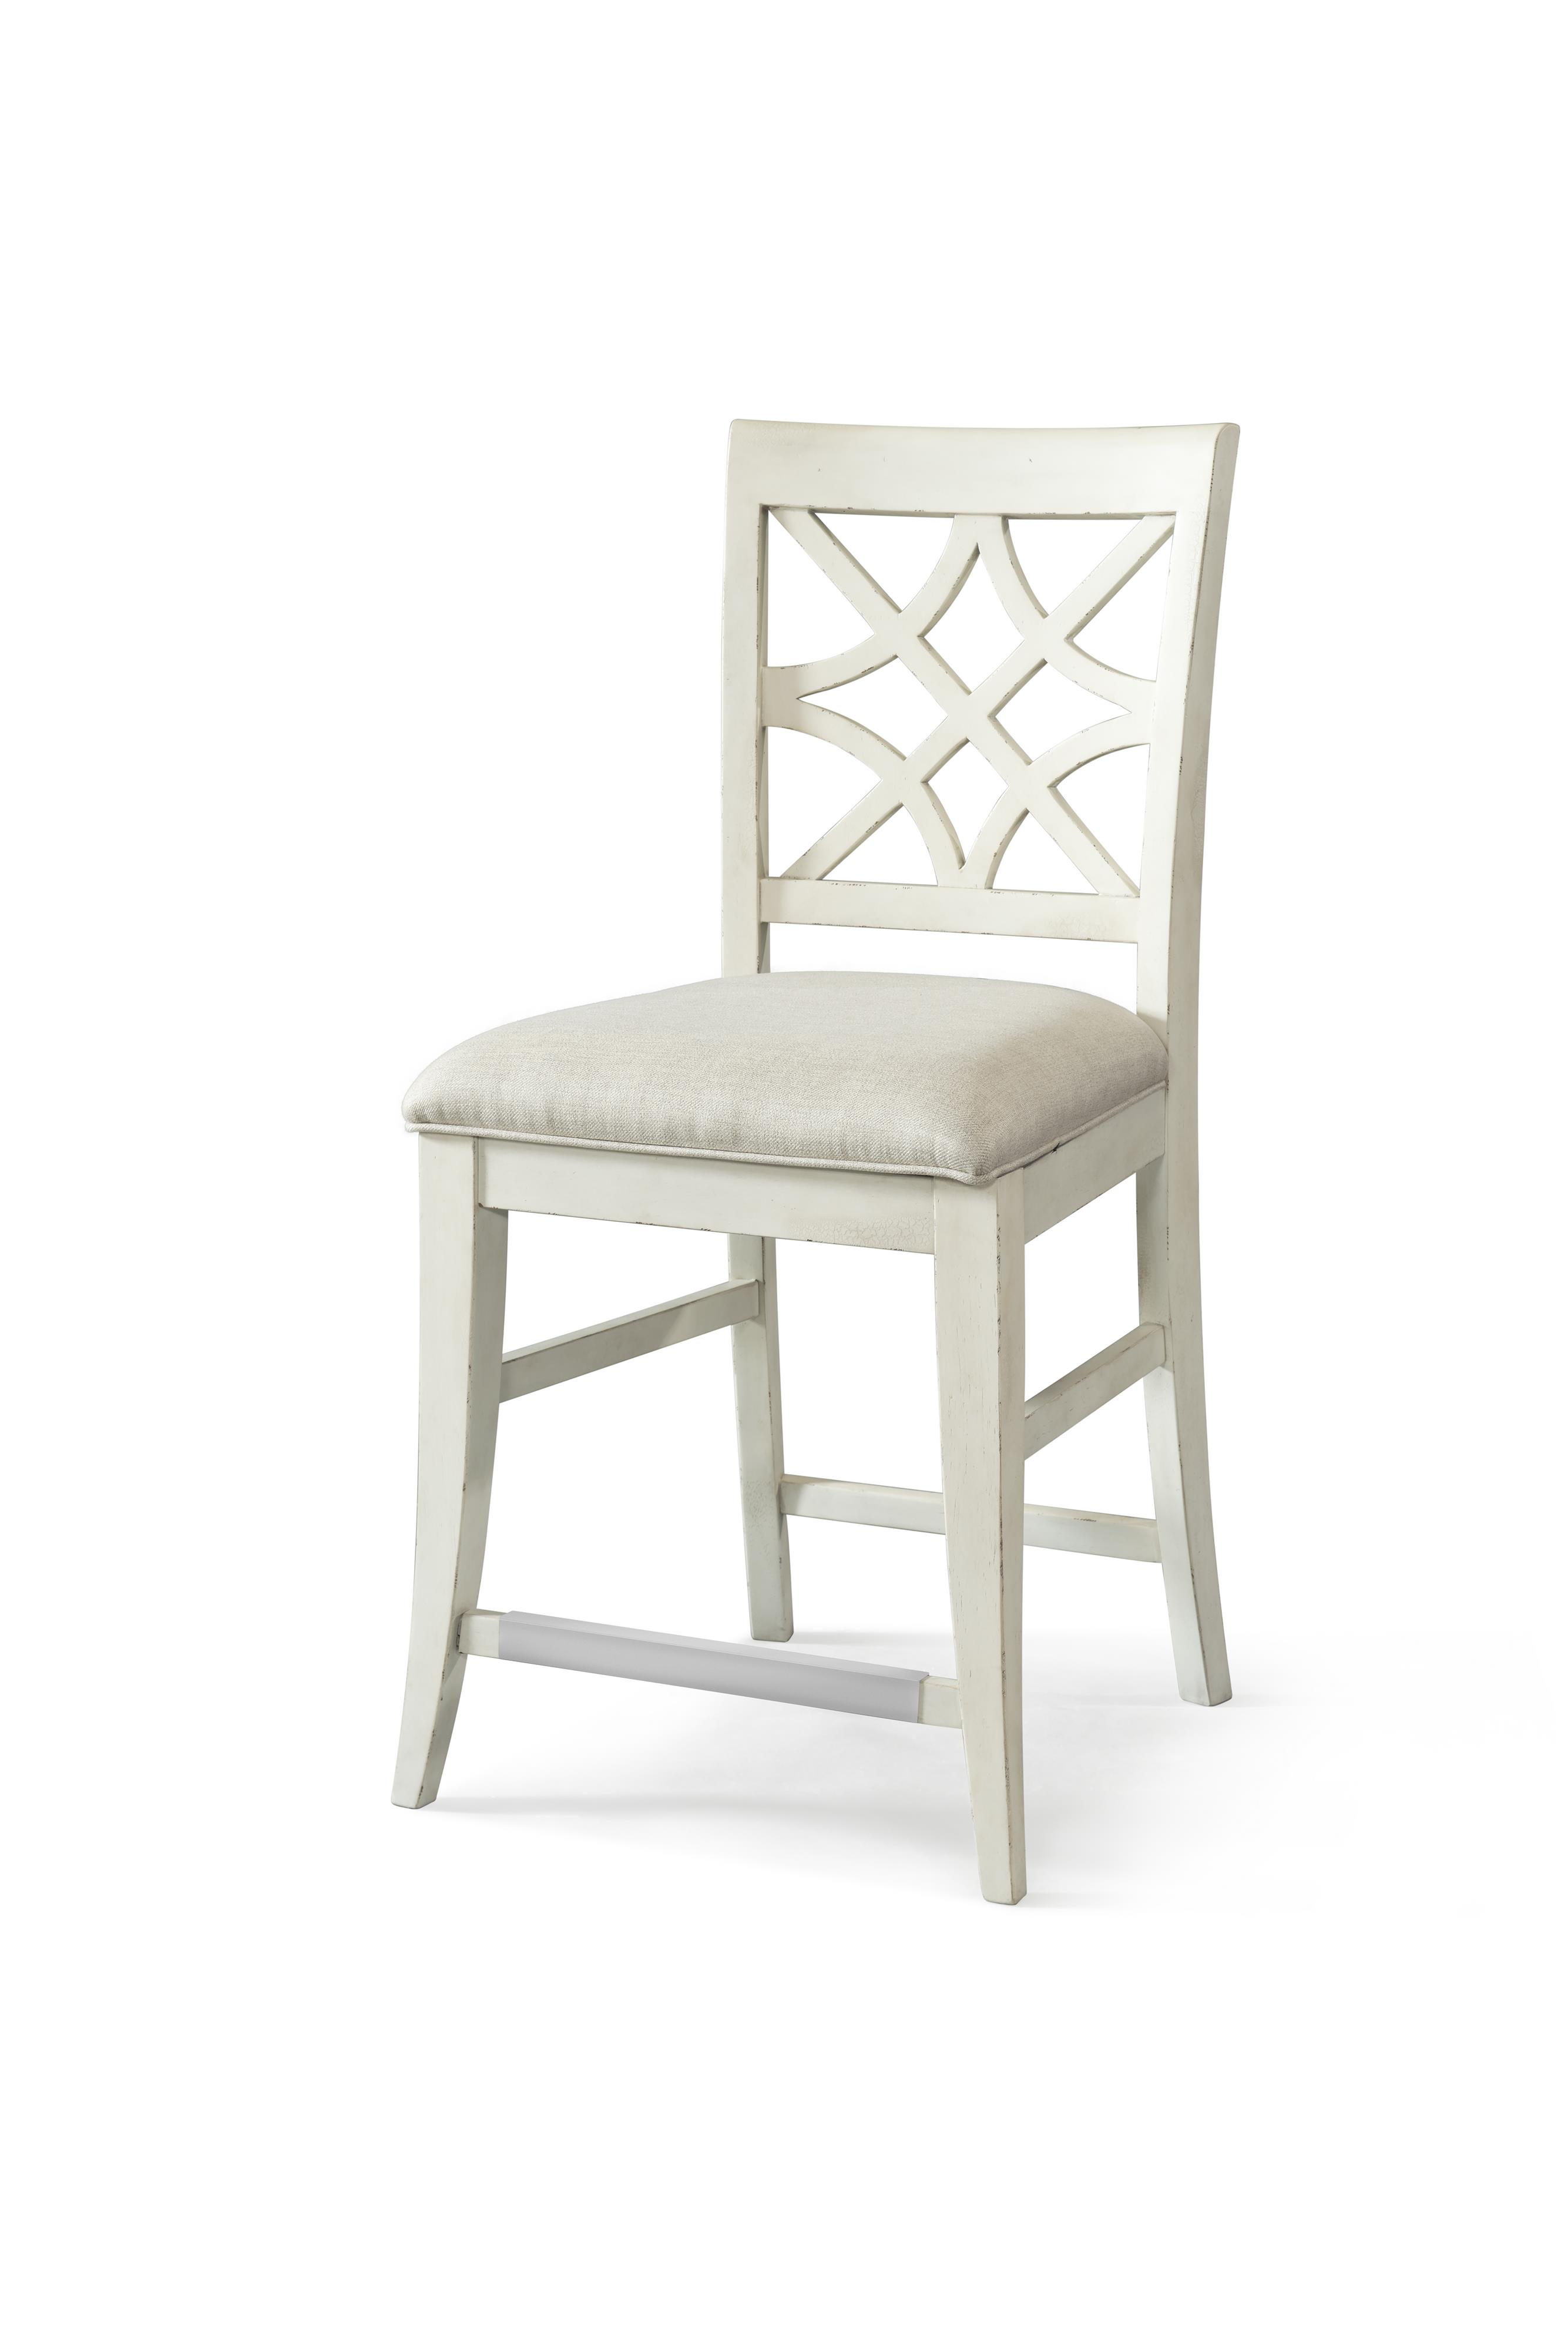 Trisha Yearwood Home Nashville Counter Height Chair with Lattice  by Trisha Yearwood Home at Belfort Furniture